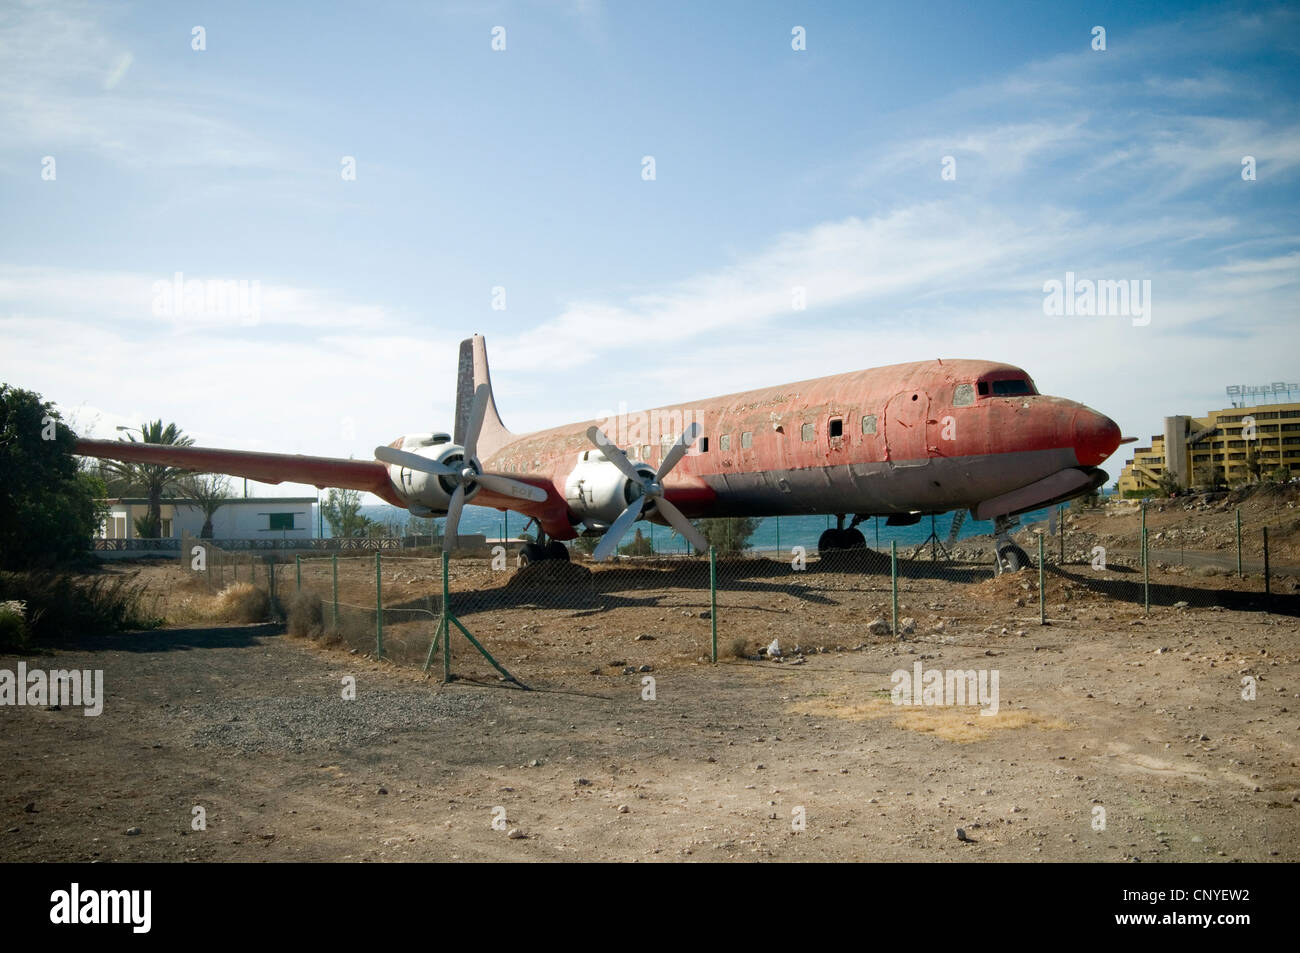 old plane planes airplane airplanes graveyard Douglas DC-6 rot rotting shell aluminum forlorn industrial history - Stock Image